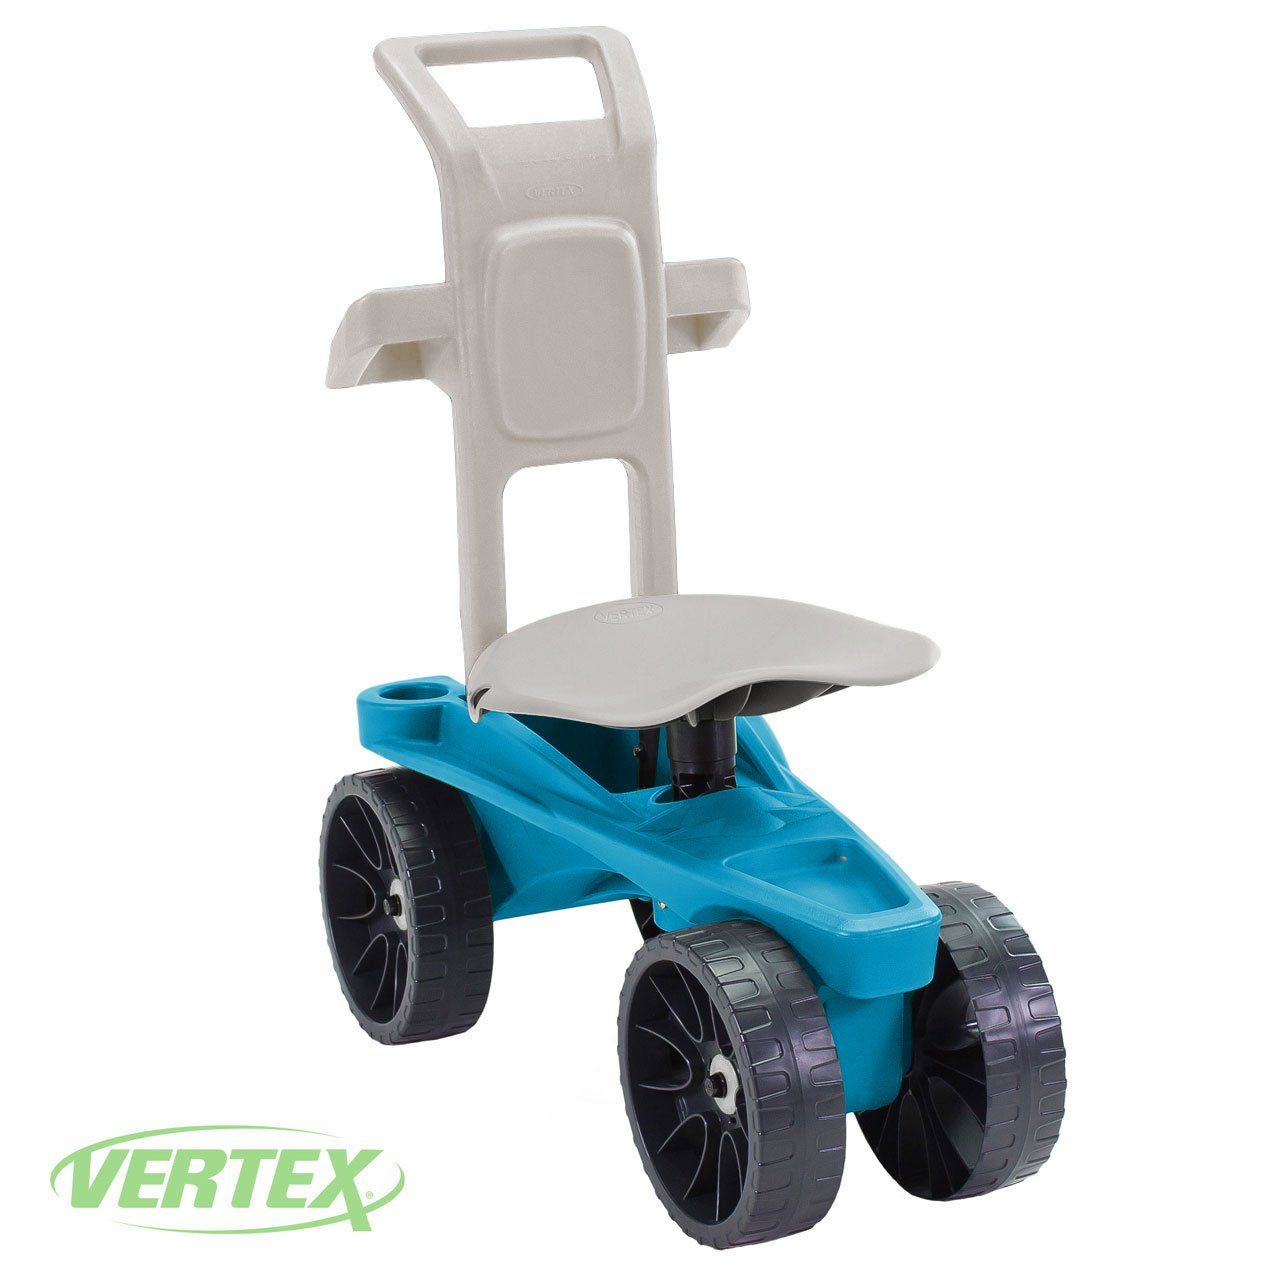 Easy Up Deluxe XTV Rolling Garden Seat and Scoot - Adjustable Swivel Seat, Heavy Duty Wheels, and Ergonomic Design To Assist Standing, Sitting, and Bending Over Made in the USA (Deluxe XTV Teal)